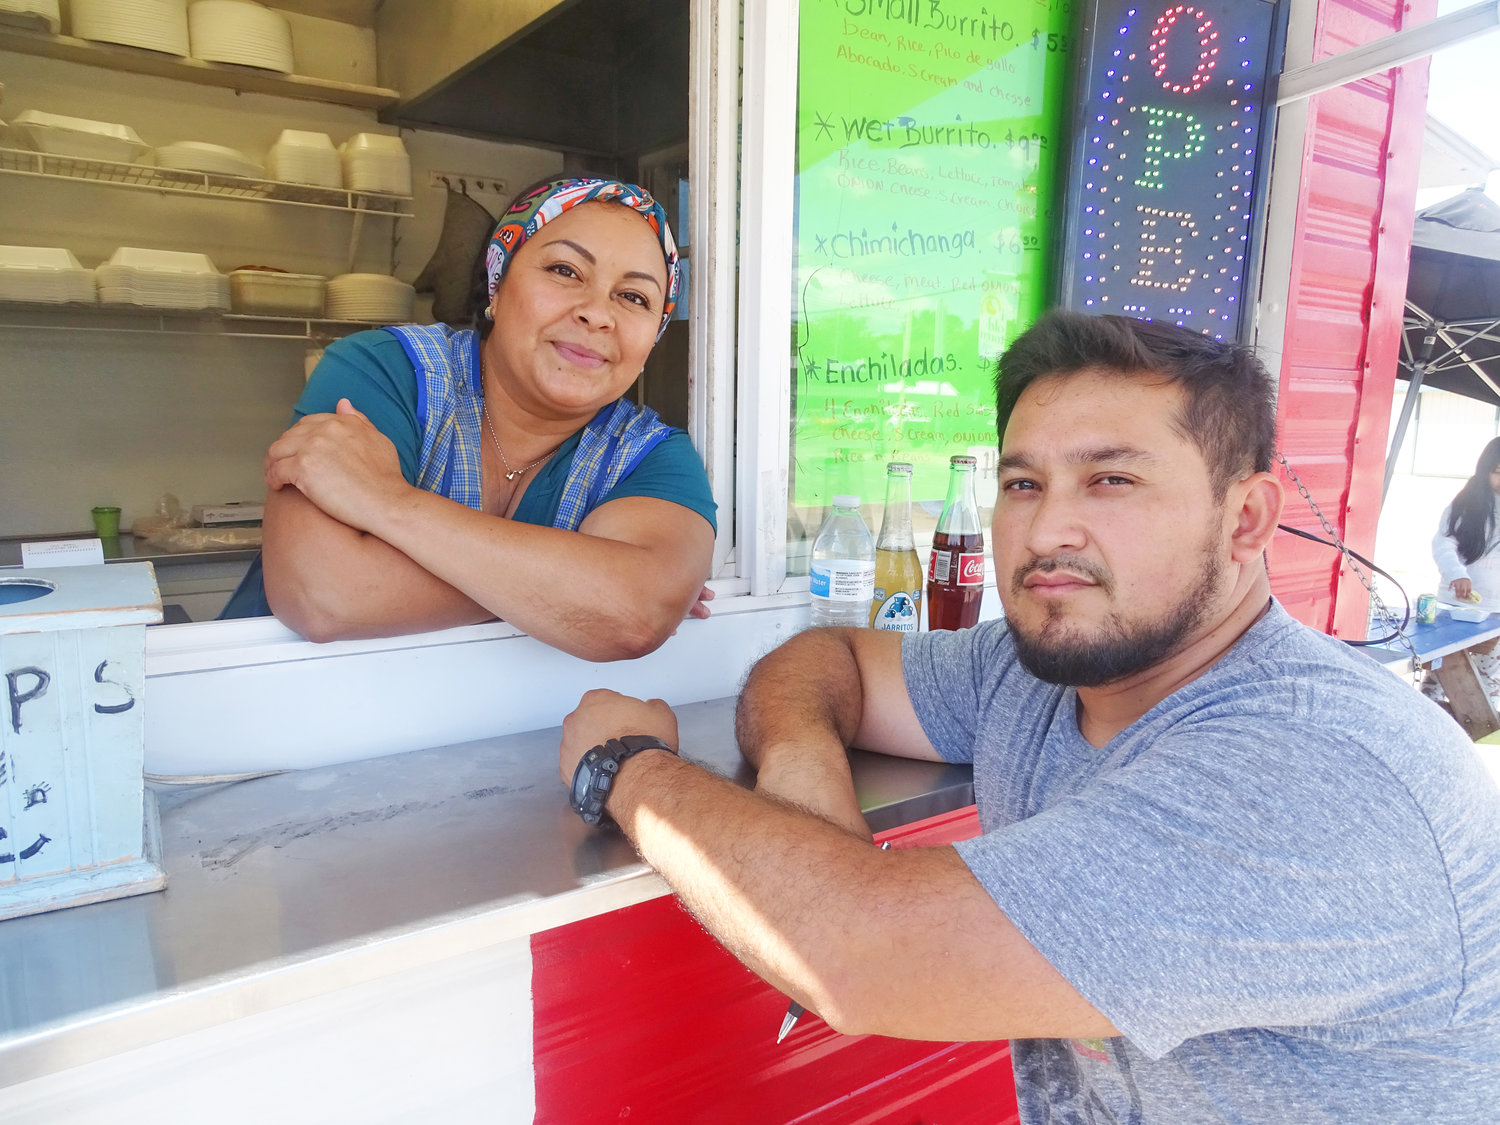 Maria Sotella and Juan Marquez of Maria's Cuisine food truck in north Lansing say they are more wary of their surroundings since the El Paso shooting.